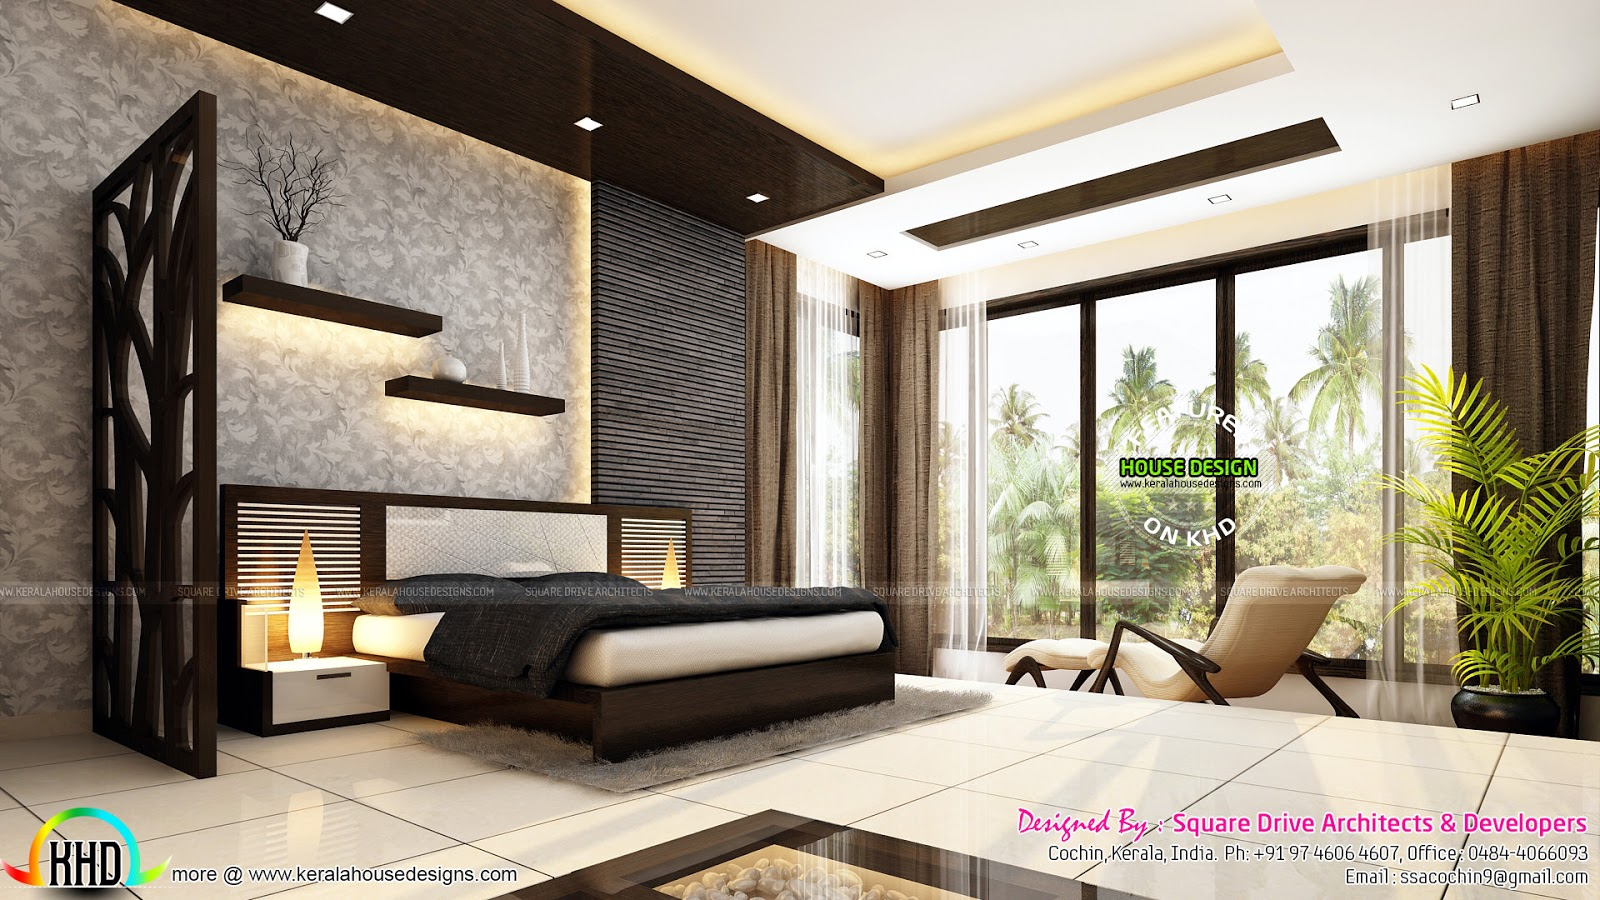 Very beautiful modern interior designs kerala home for House design interior decorating